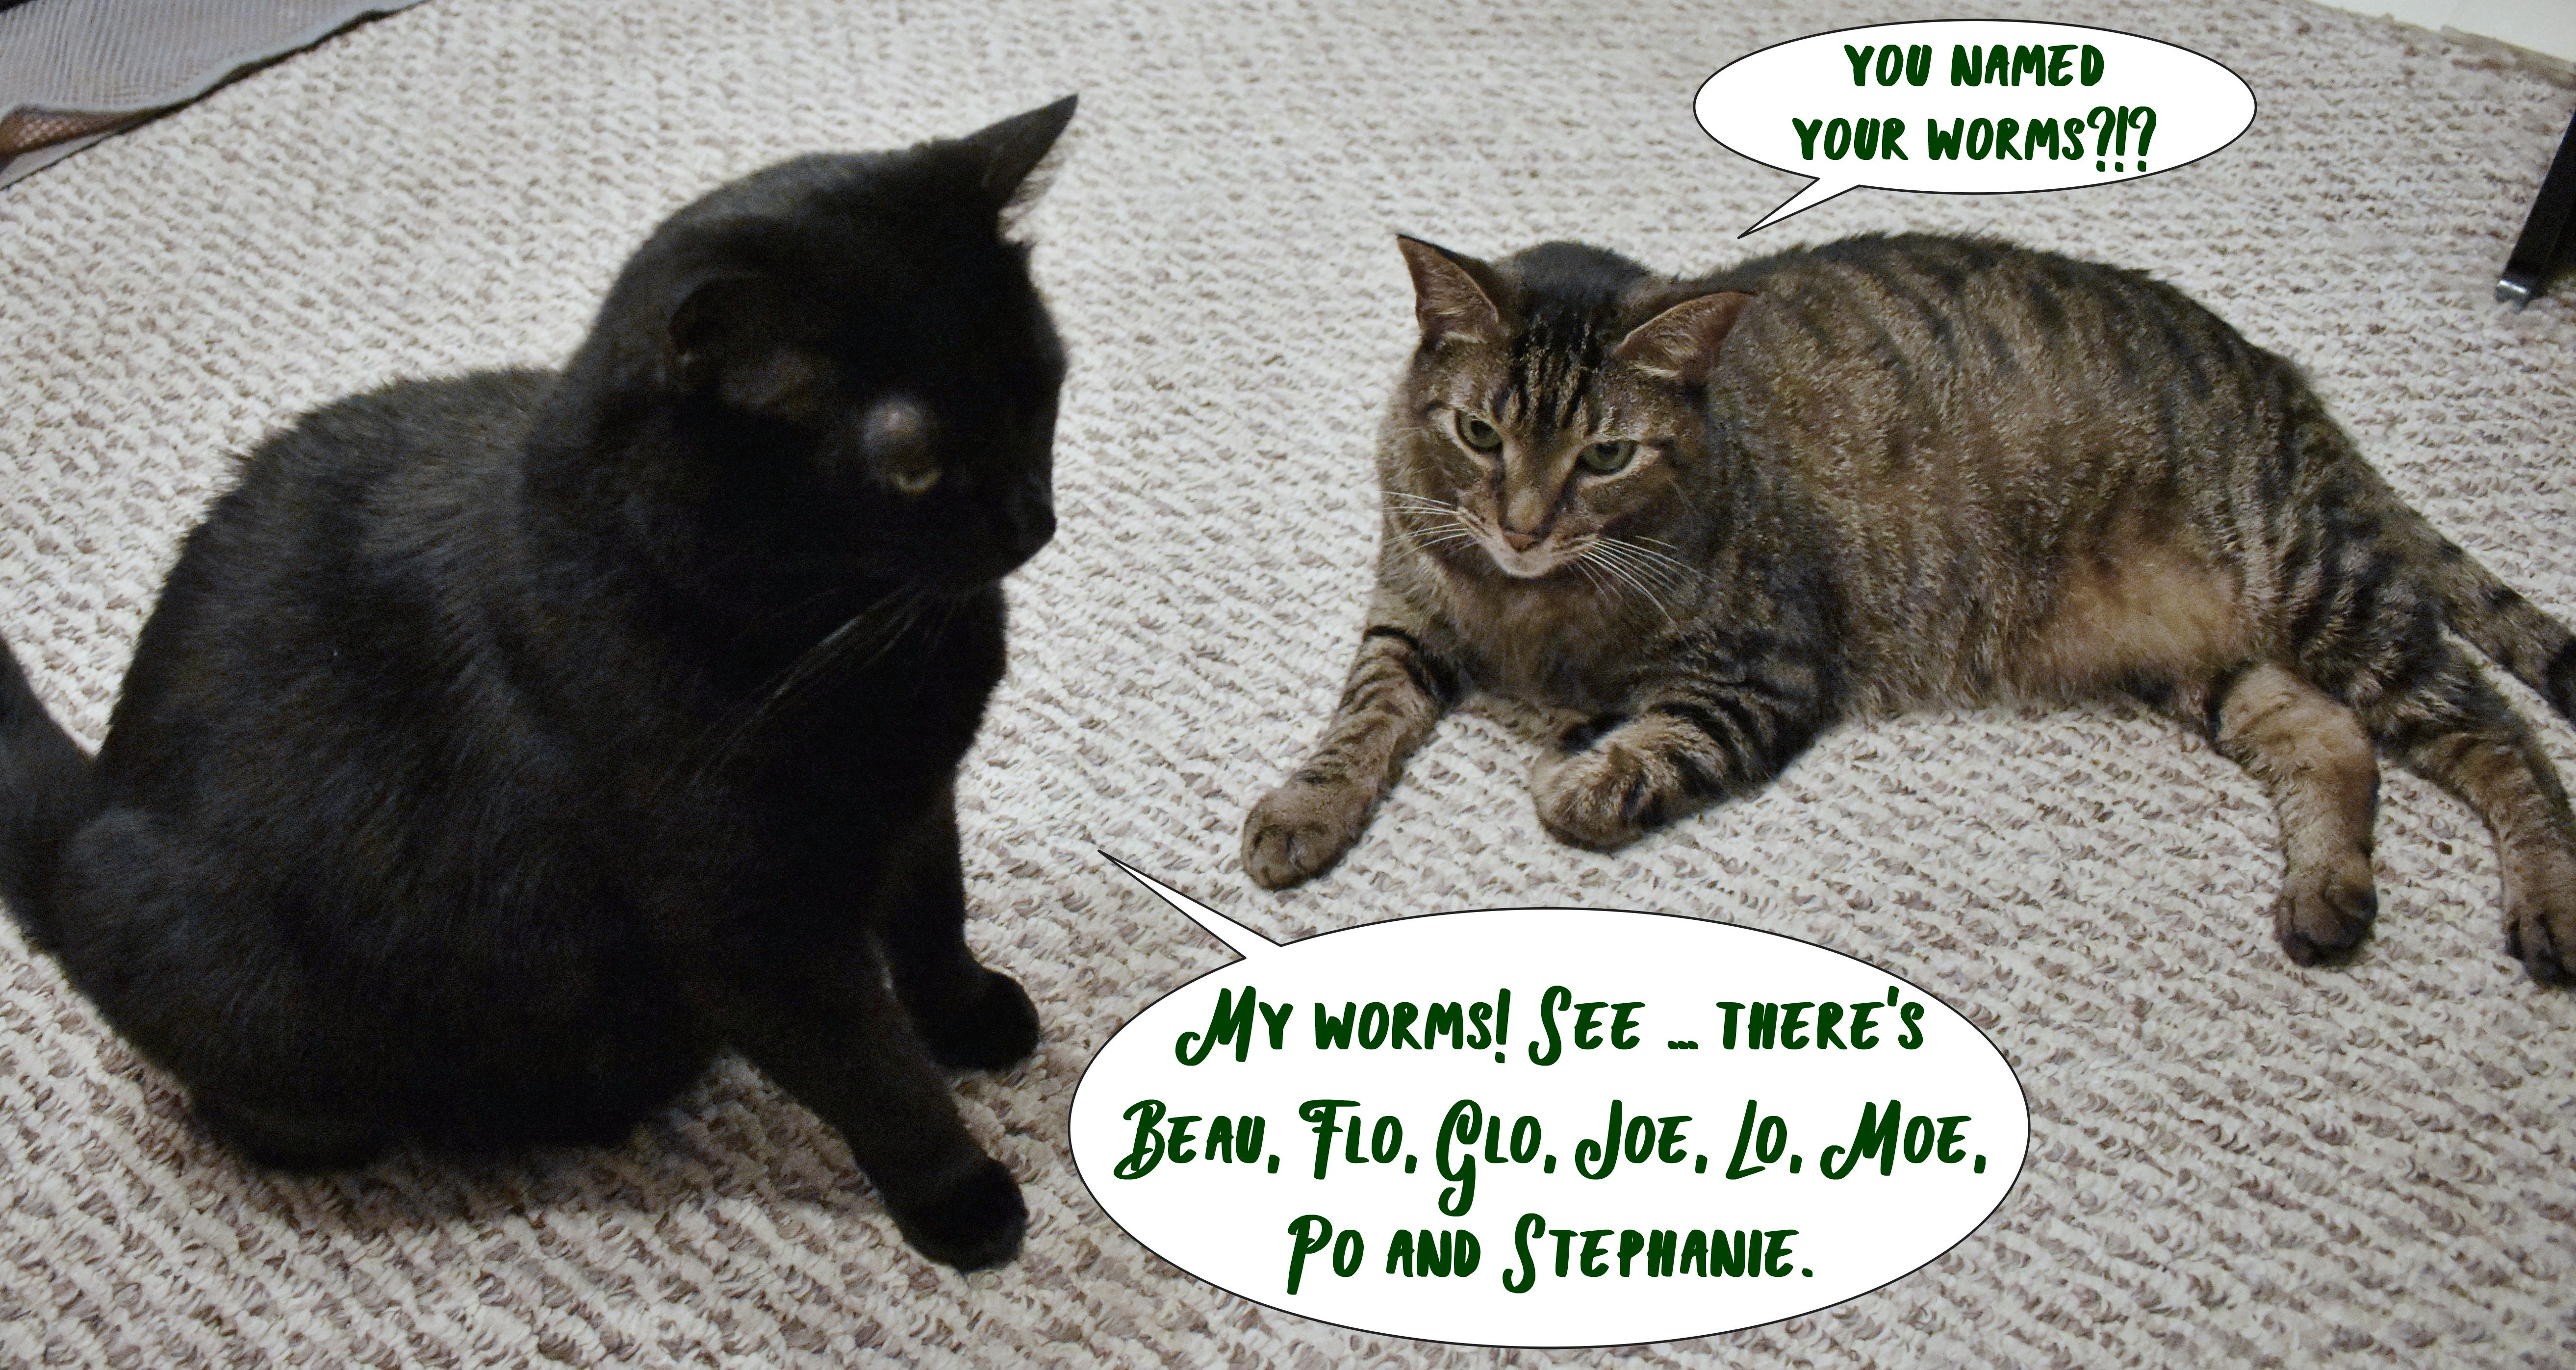 Let's talk about WORMS?!? ChewyInfluencer Cats and